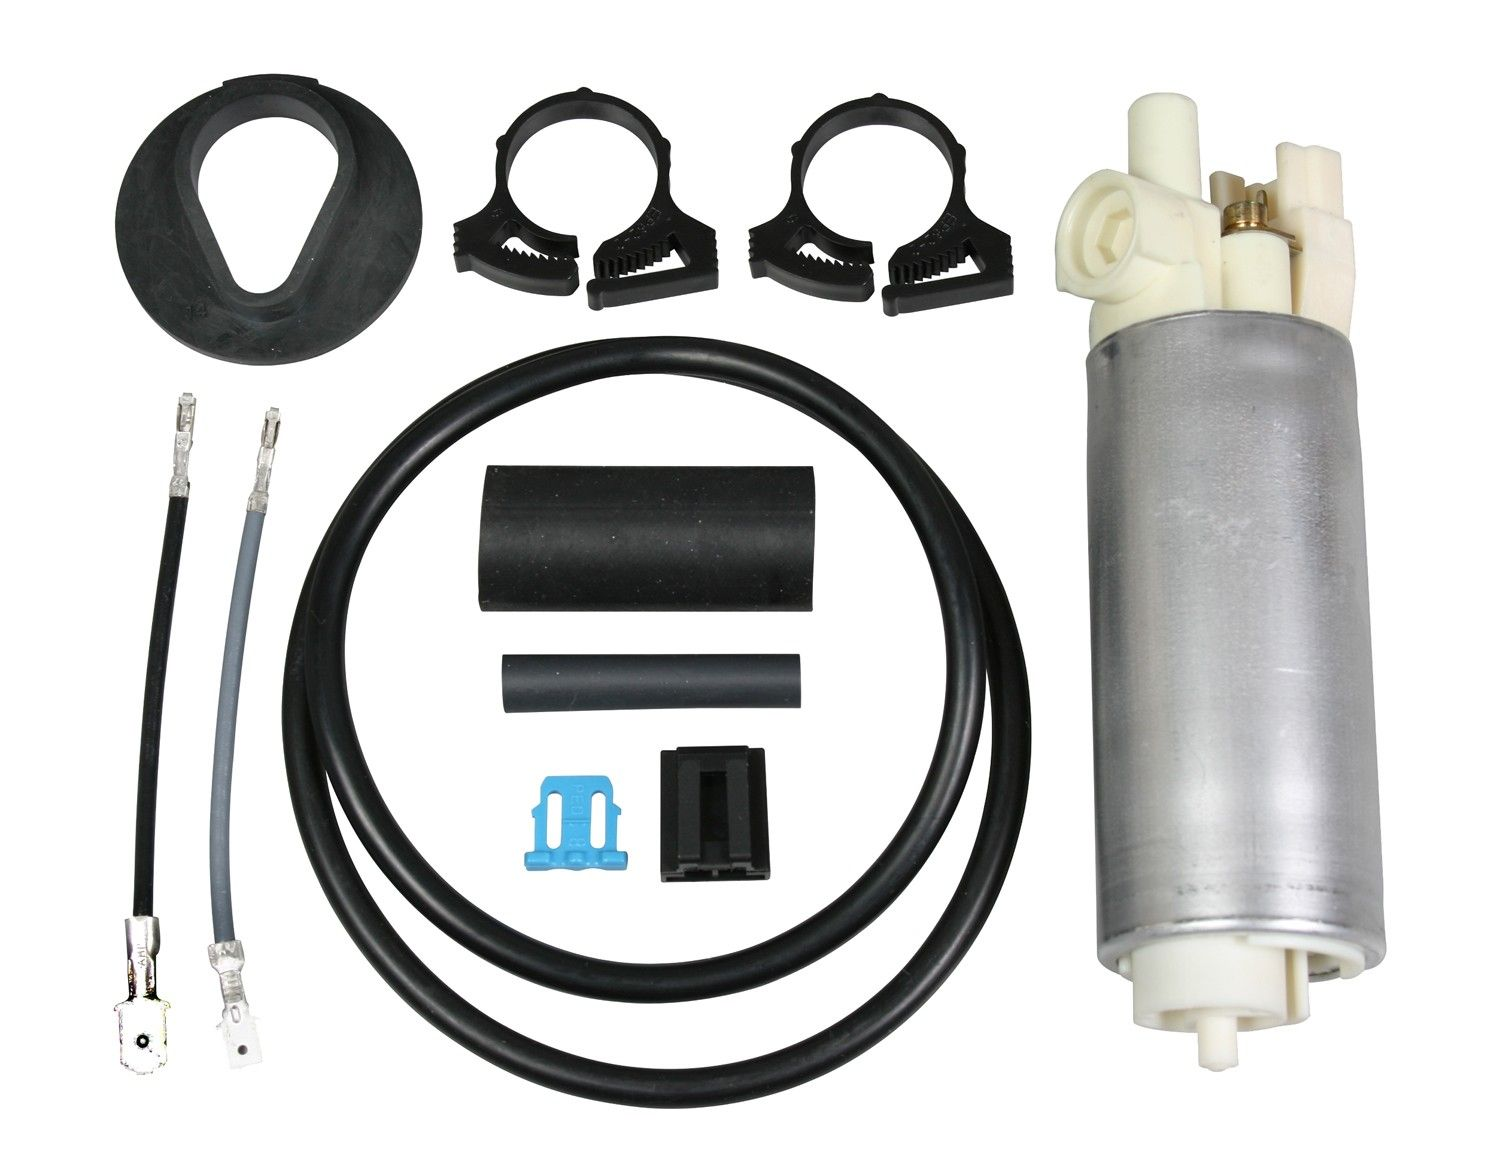 Gmc S15 Jimmy Electric Fuel Pump Replacement Acdelco Airtex 4 Wire Harness 1986 N A 6 Cyl 28l E3902 Includes Tank Seal Strainer Required To Validate The Warranty